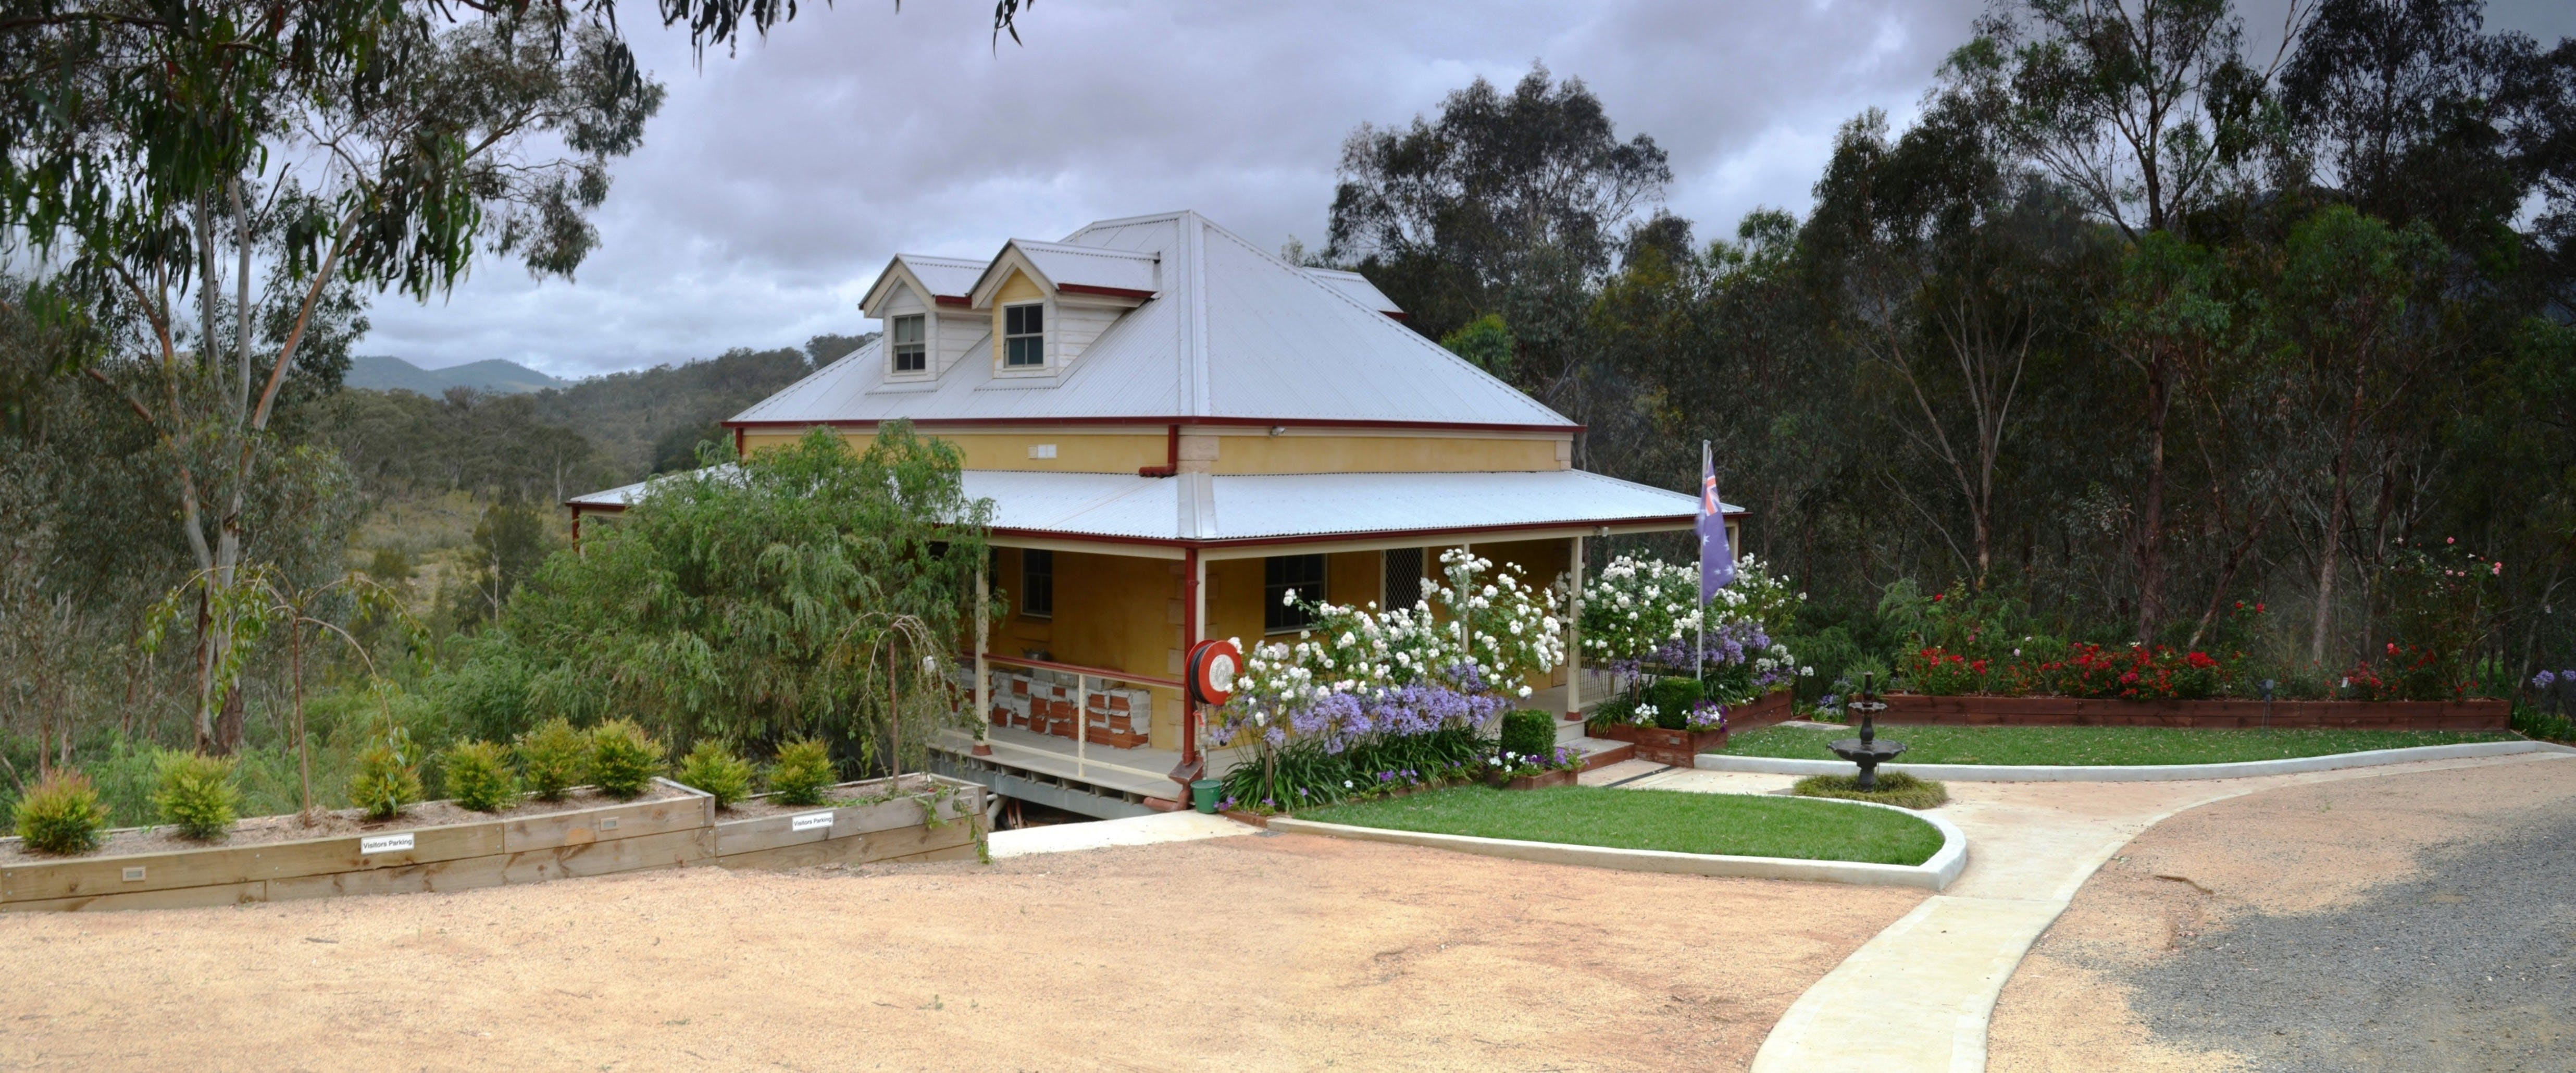 Tanwarra Lodge Bed and Breakfast - Accommodation QLD